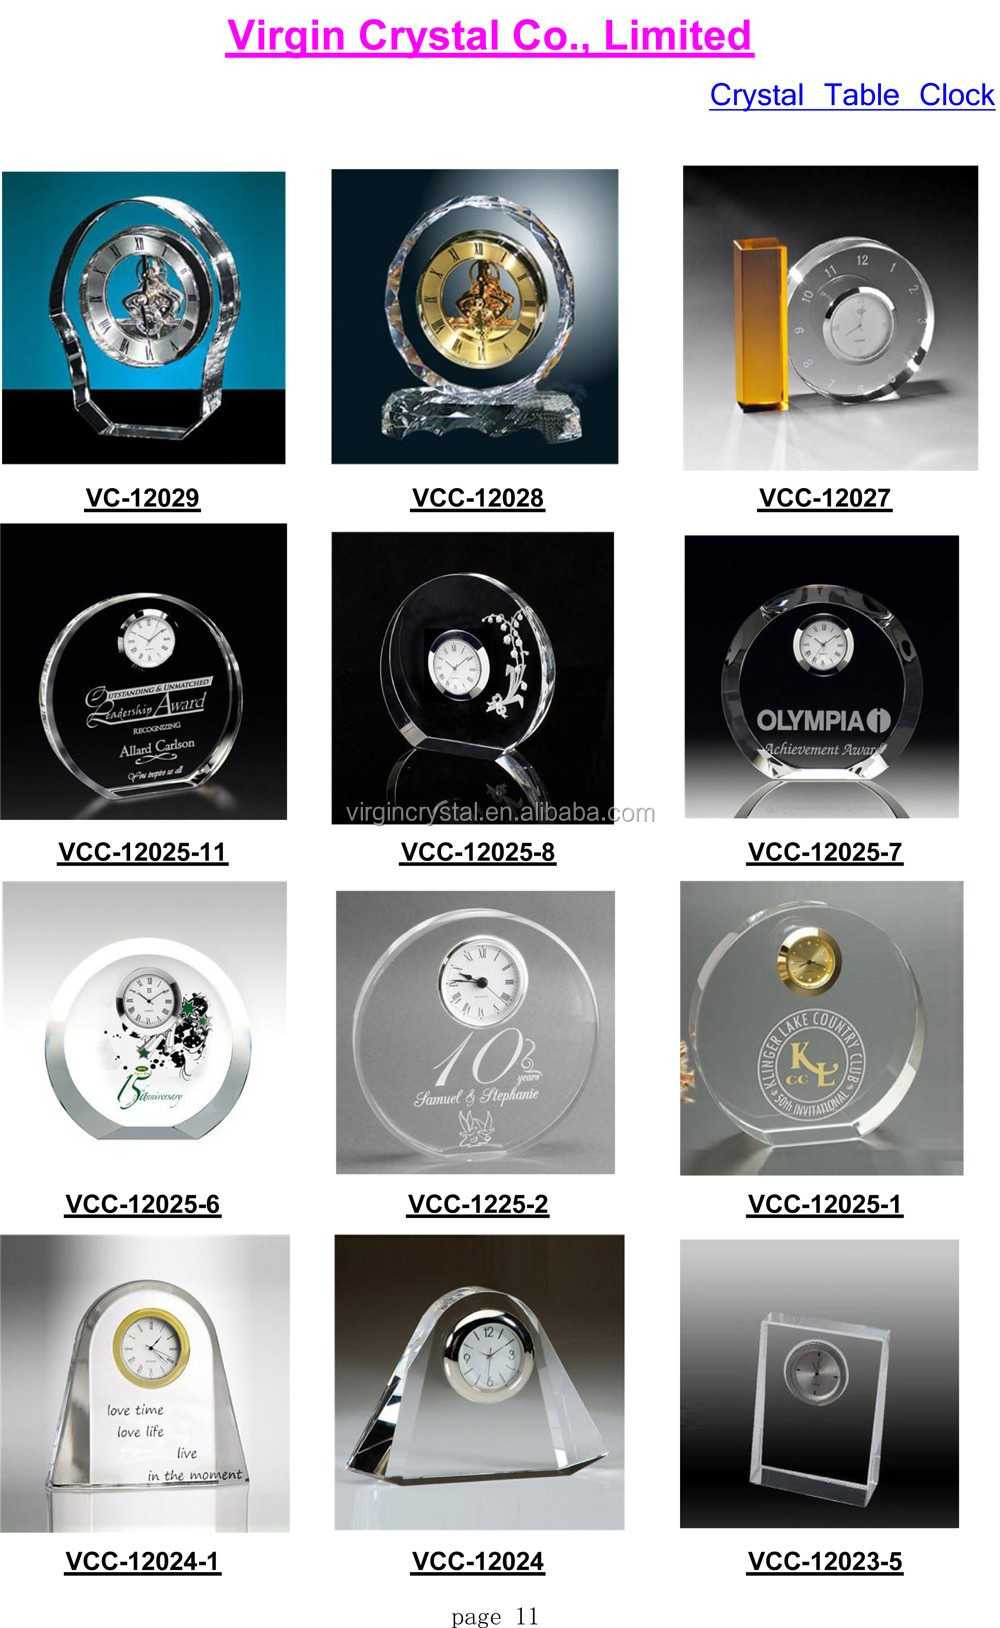 2016 Crystal Table Clock and Mechanical clock Catalog-11.jpg